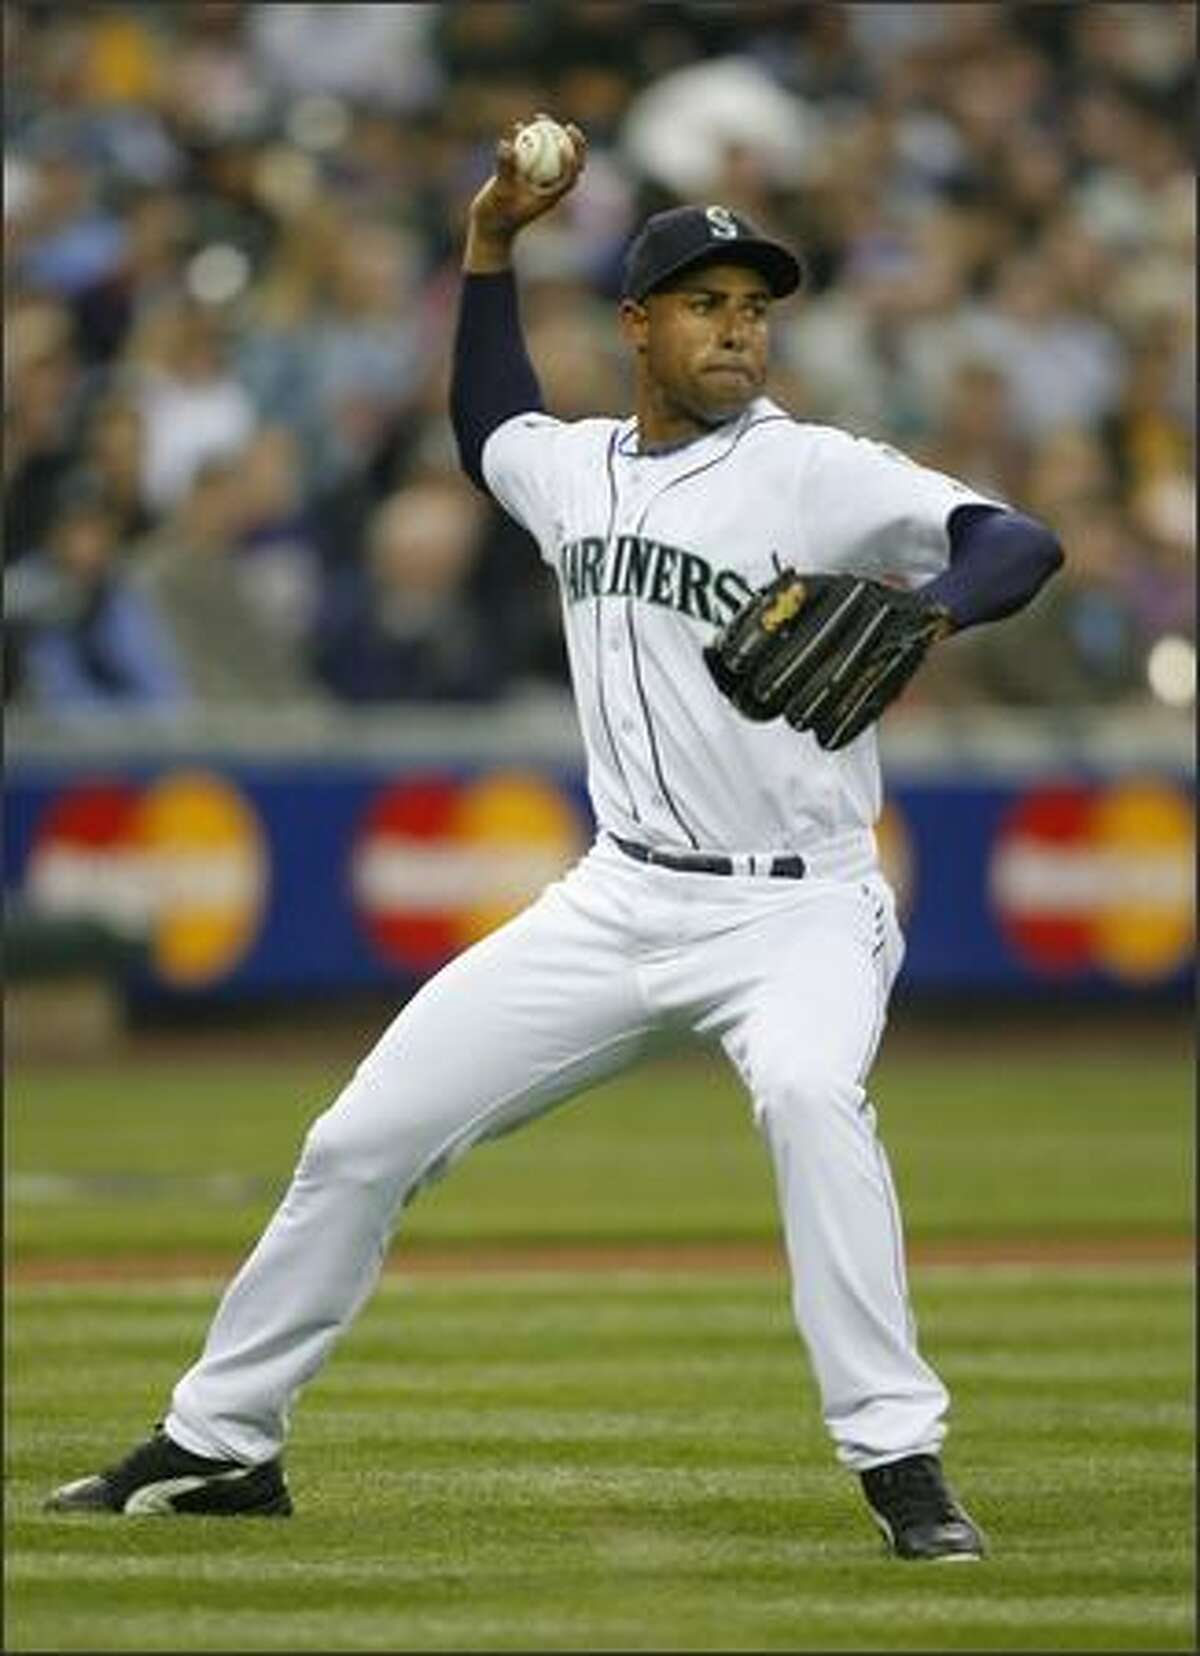 Seattle Mariners Miguel Batista throws out Oakland's Milton Bradley in the 1st inning against the Oakland Athletics at Safeco Field on Wednesday April 4, 2007.